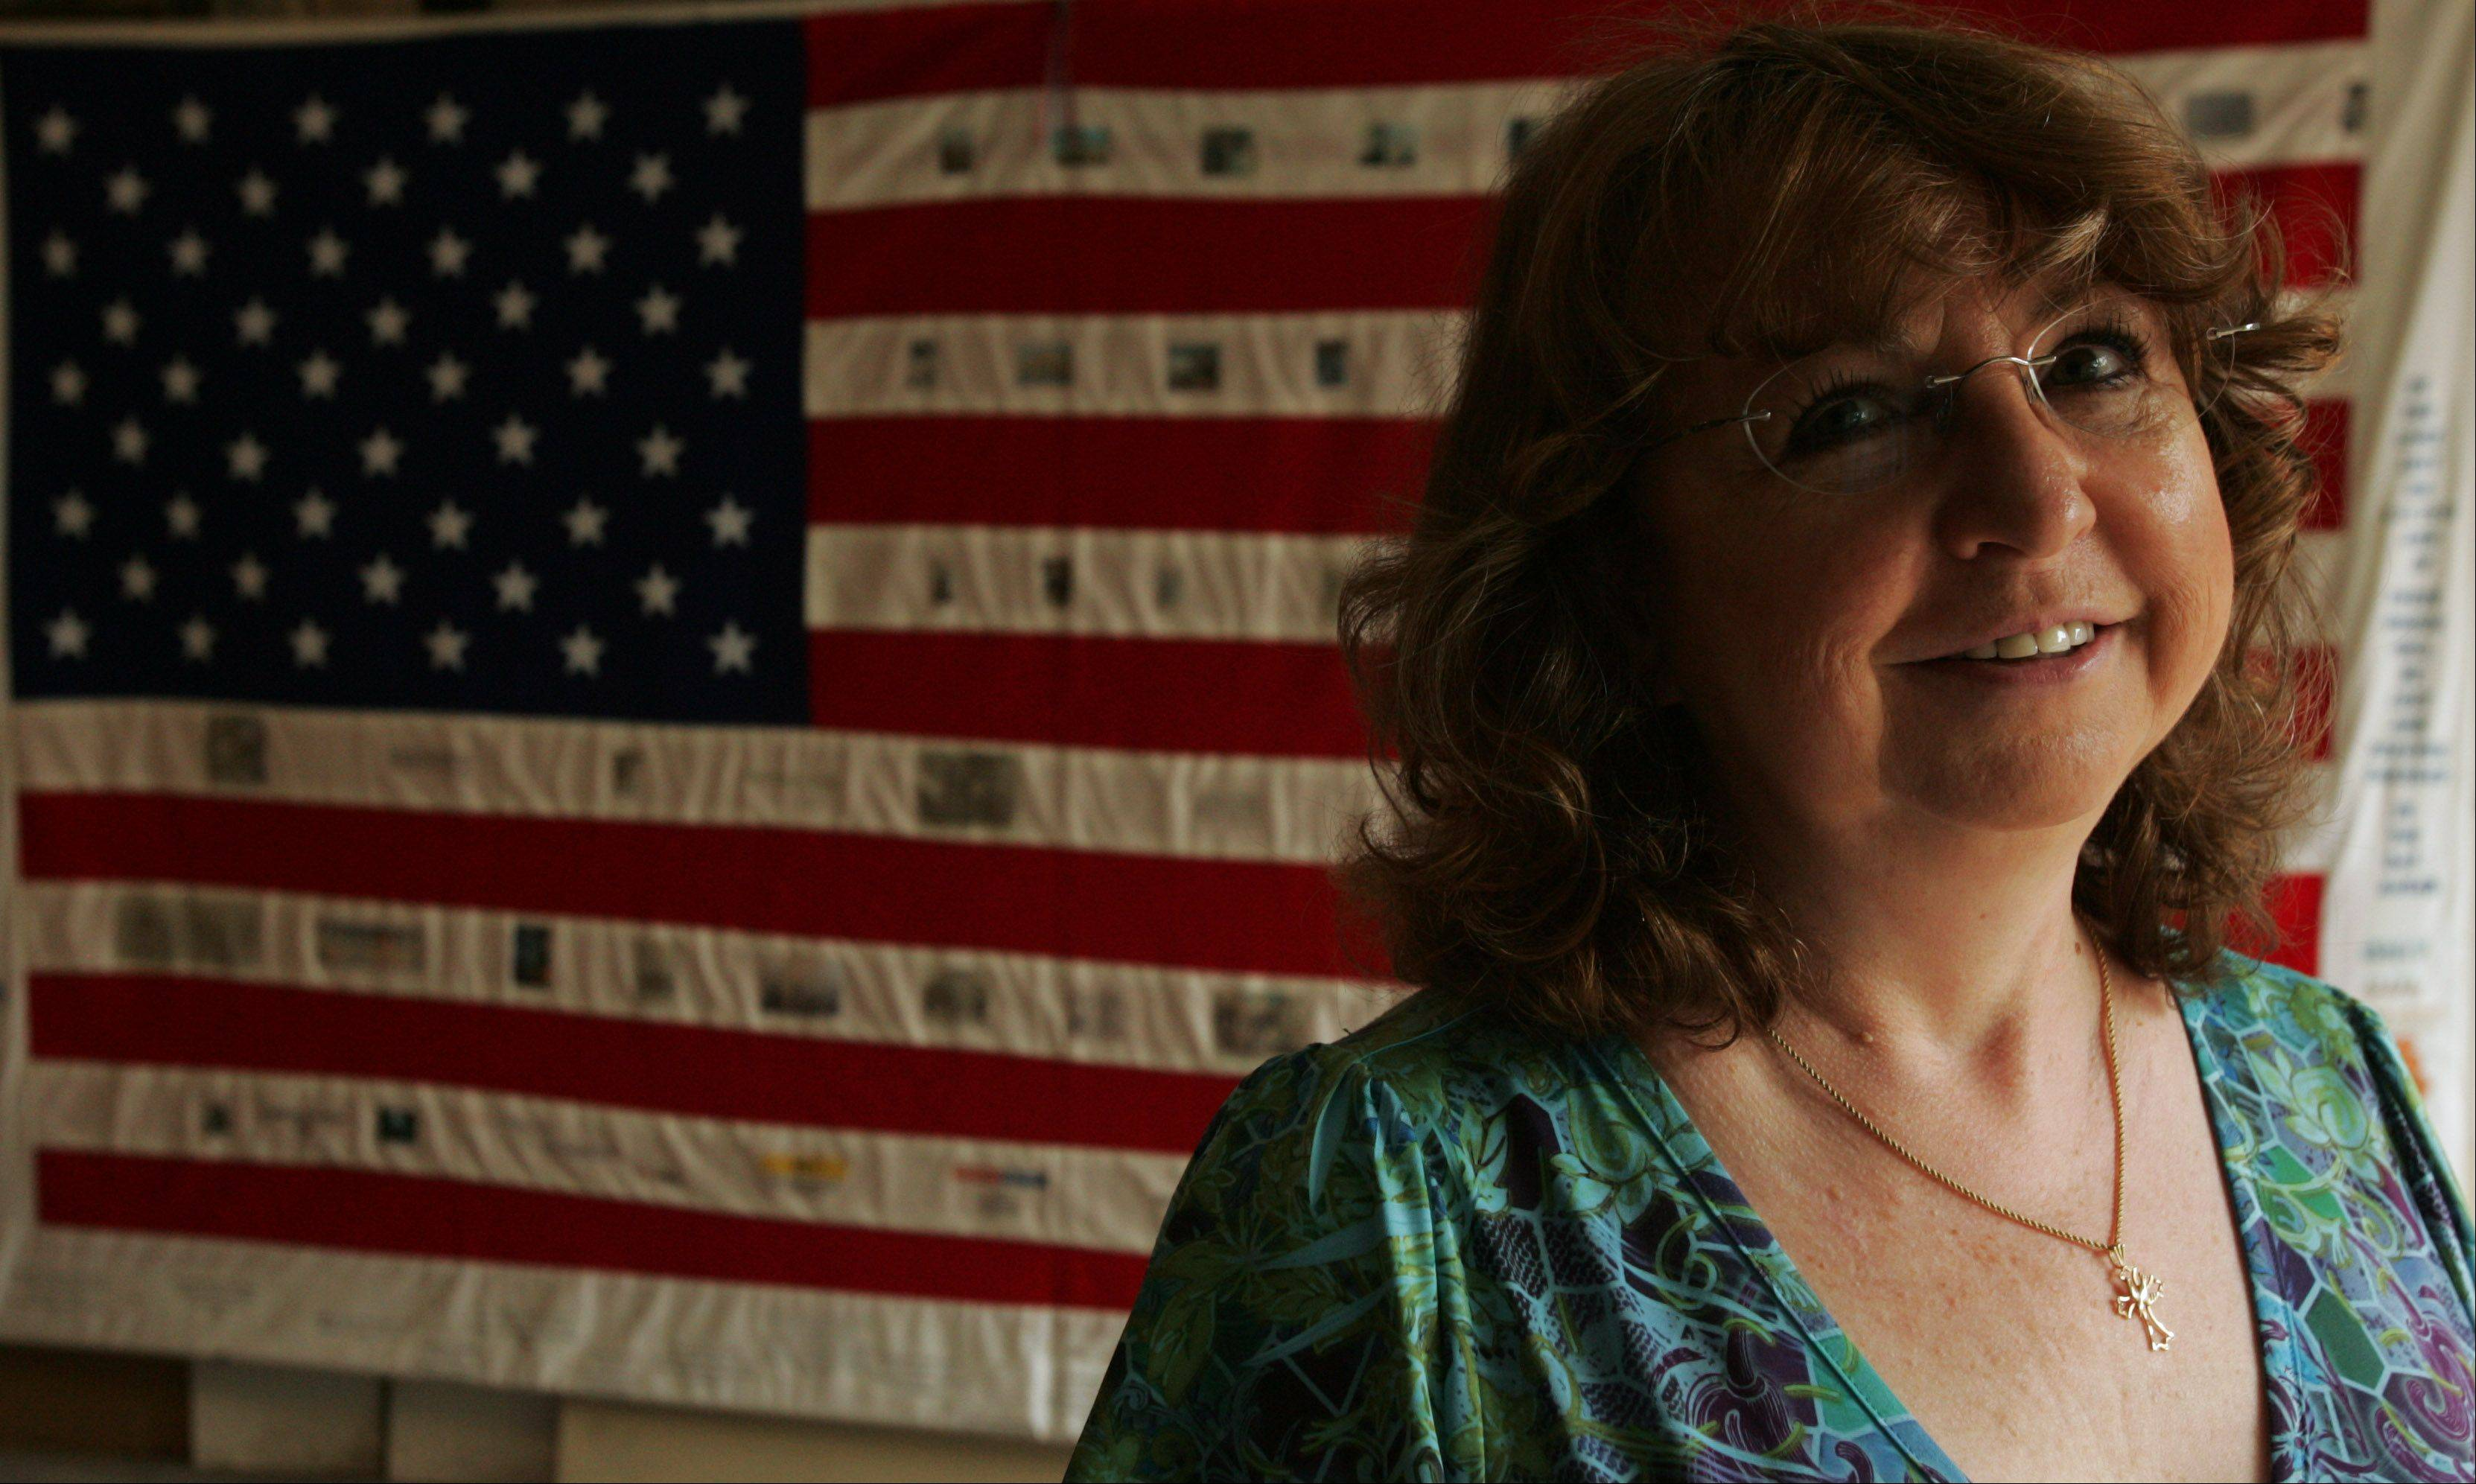 Paula Eaton of South Elgin hopes to have her homemade 9/11 flag displayed somewhere permanently, perhaps even at the 9/11 memorial museum near ground zero. She created the flag 10 years ago as a way to channel her feelings of helplessness during and after the attacks.